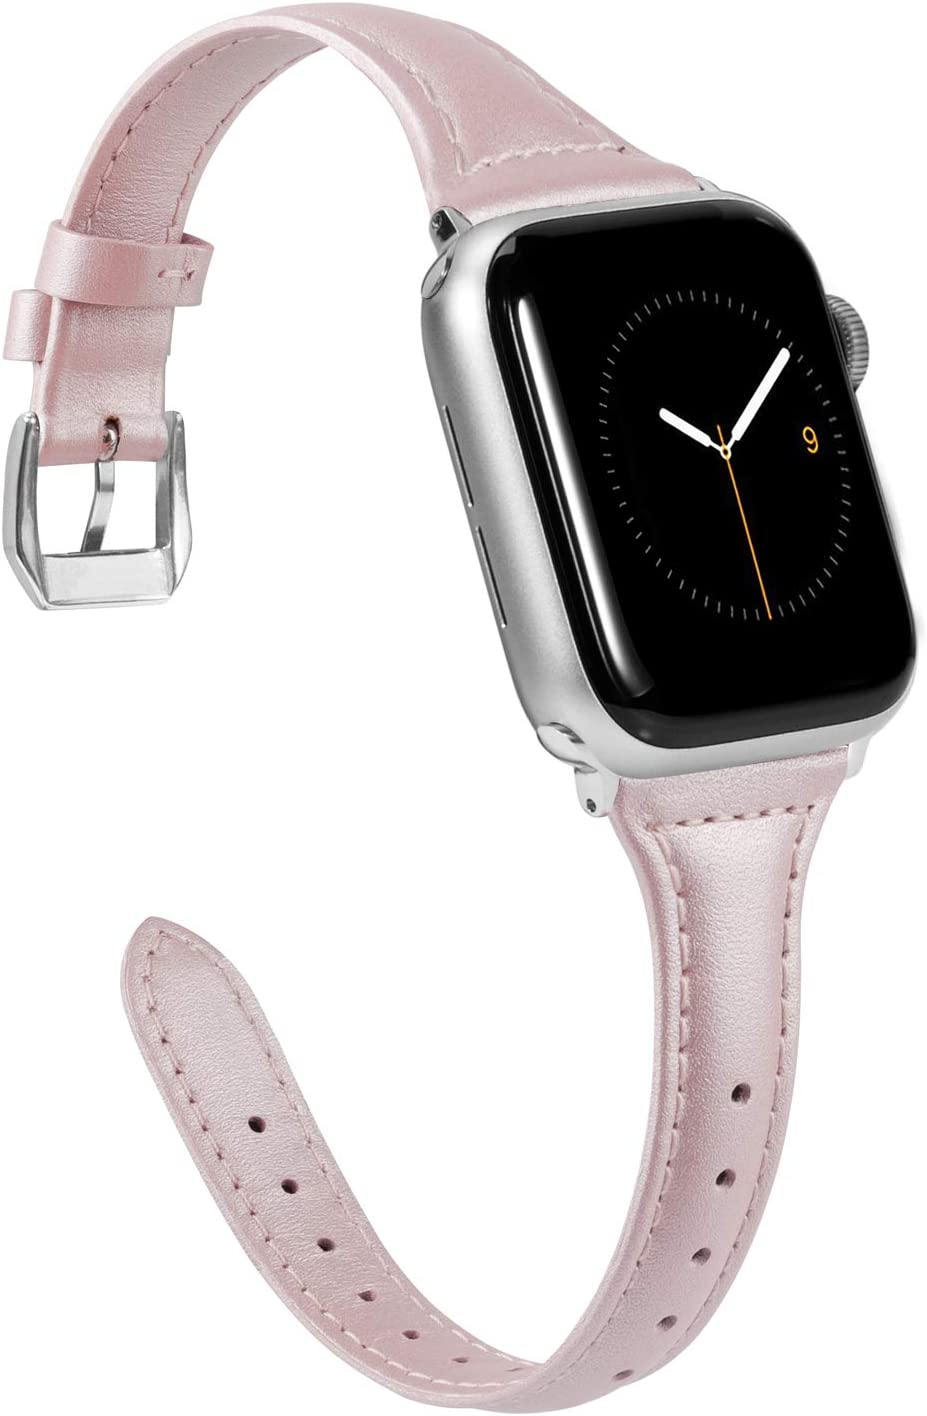 Wearlizer Thin Leather Compatible with Apple Watch Slim Leopard Bands 42mm 44mm for iWatch SE Womens Mens Strap Classic Wristband Slim Replacement (Metal Silver Clasp) Series 6 5 4 3 2 1 Sport-Pink